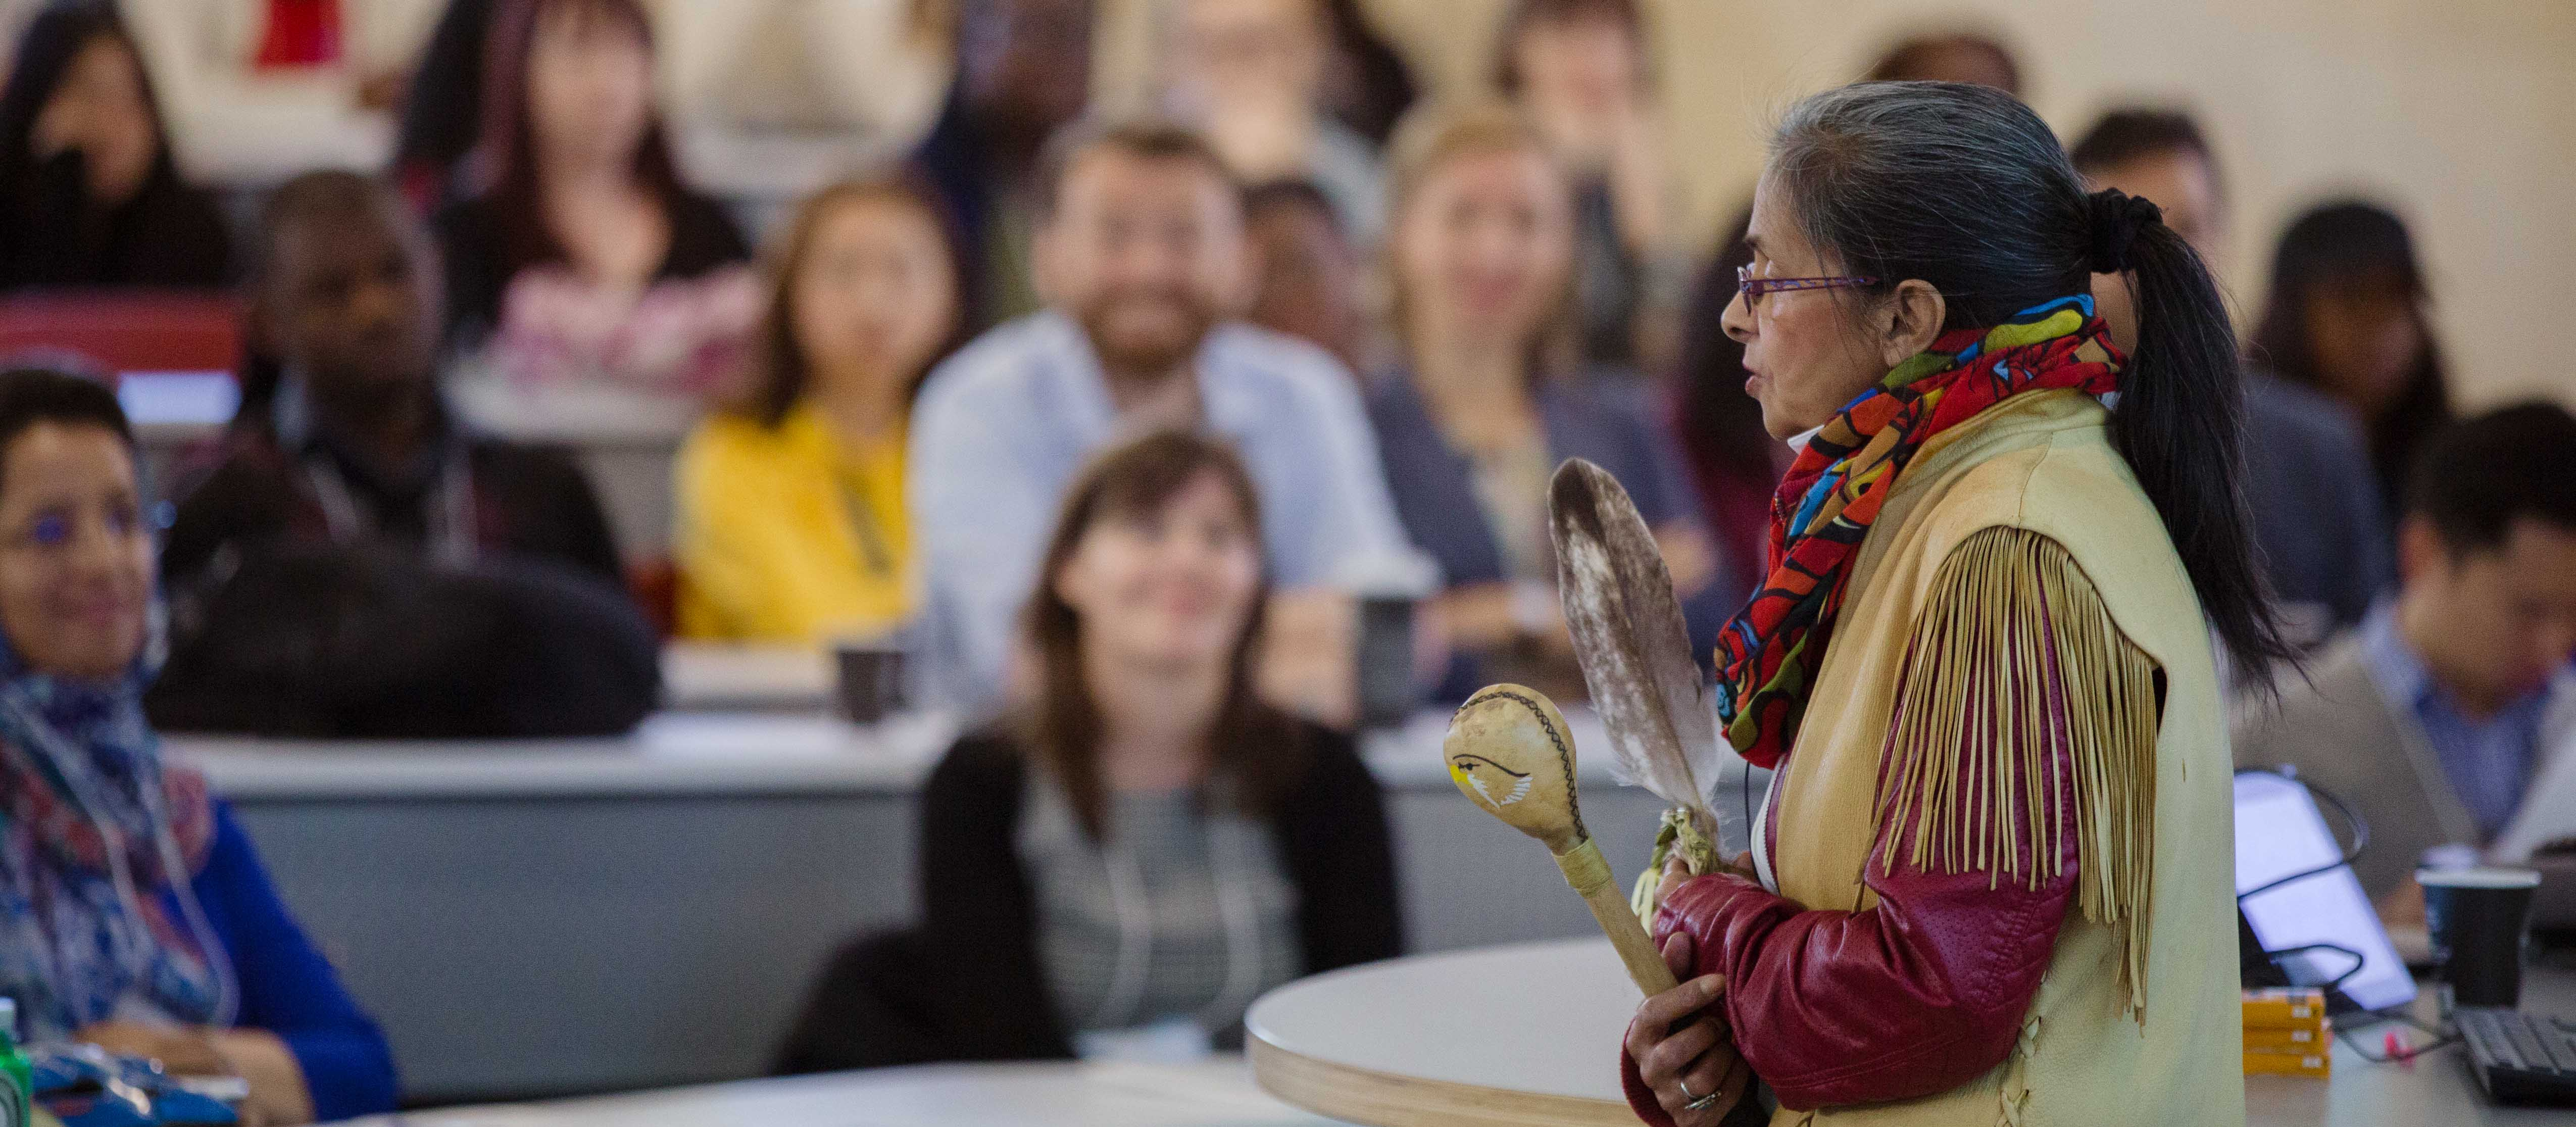 An indigenous woman speaking in front of a class